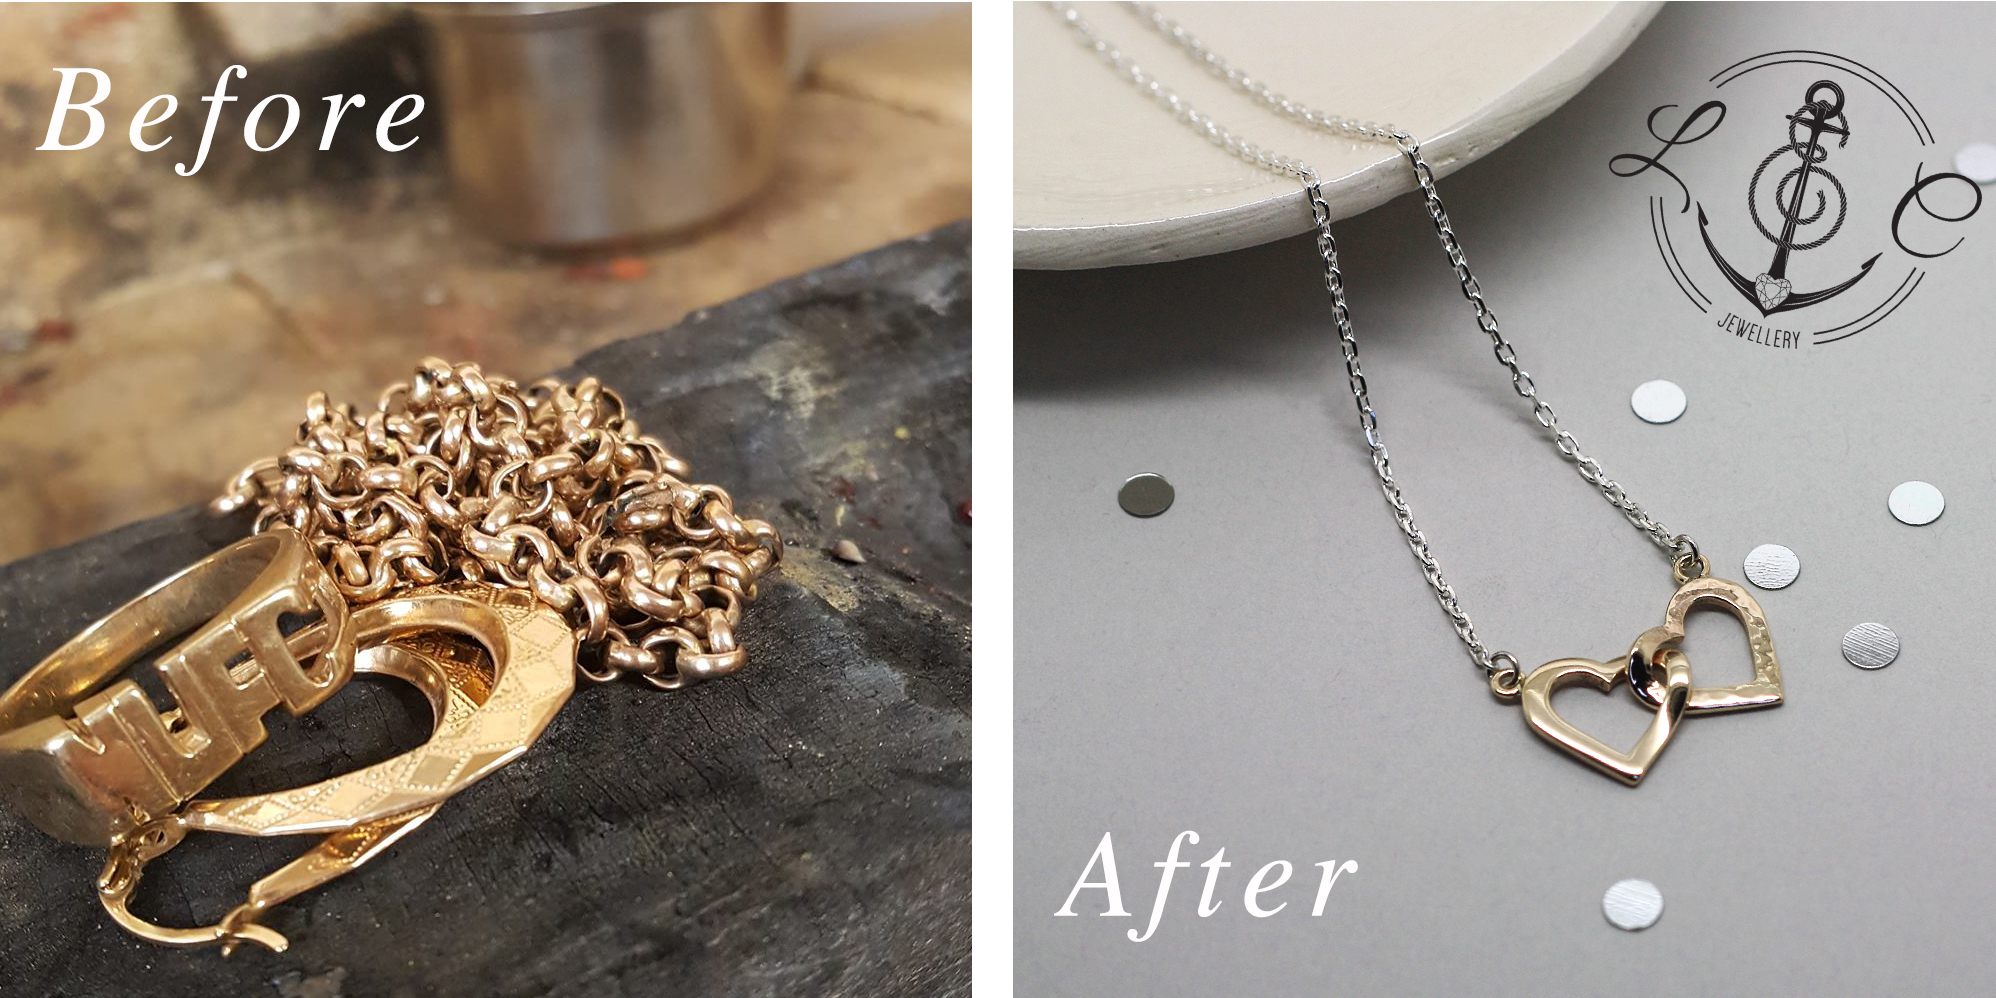 Remodelled gold jewellery service by LuLu & Charles Jewellery uk, handmade 9ct Yellow Gold entwined heart necklace